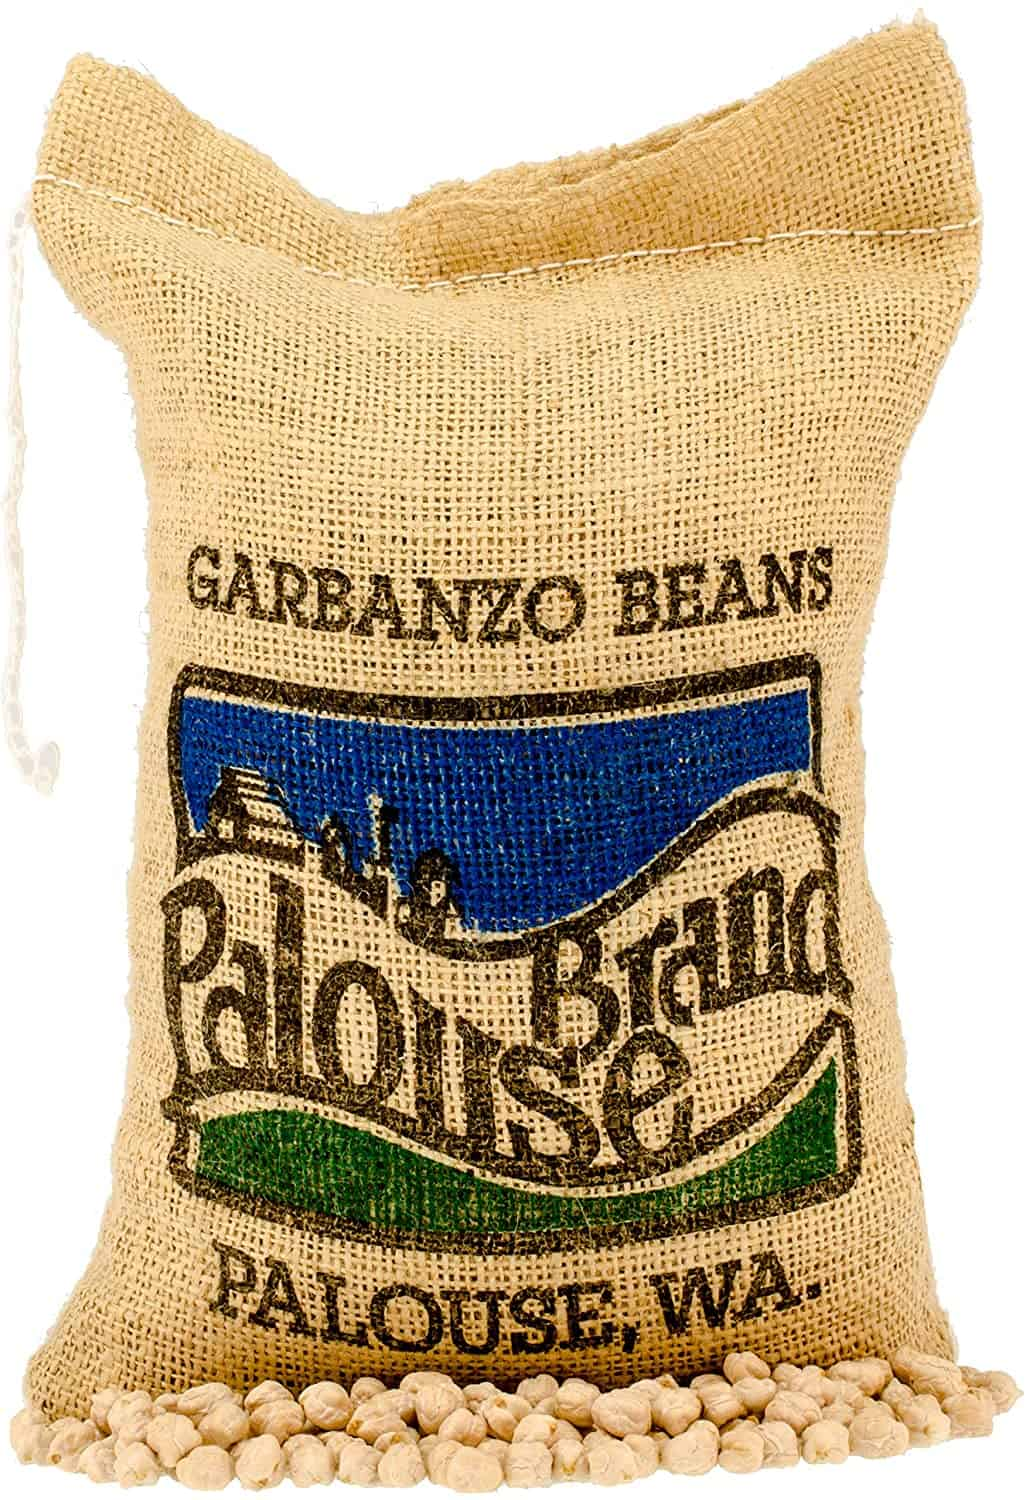 Garbanzo Beans aka Chickpeas or Ceci Beans   5 LBS   Non-GMO Project Verified   100% Non-Irradiated   Certified Kosher Parve   USA Grown   Field Traced